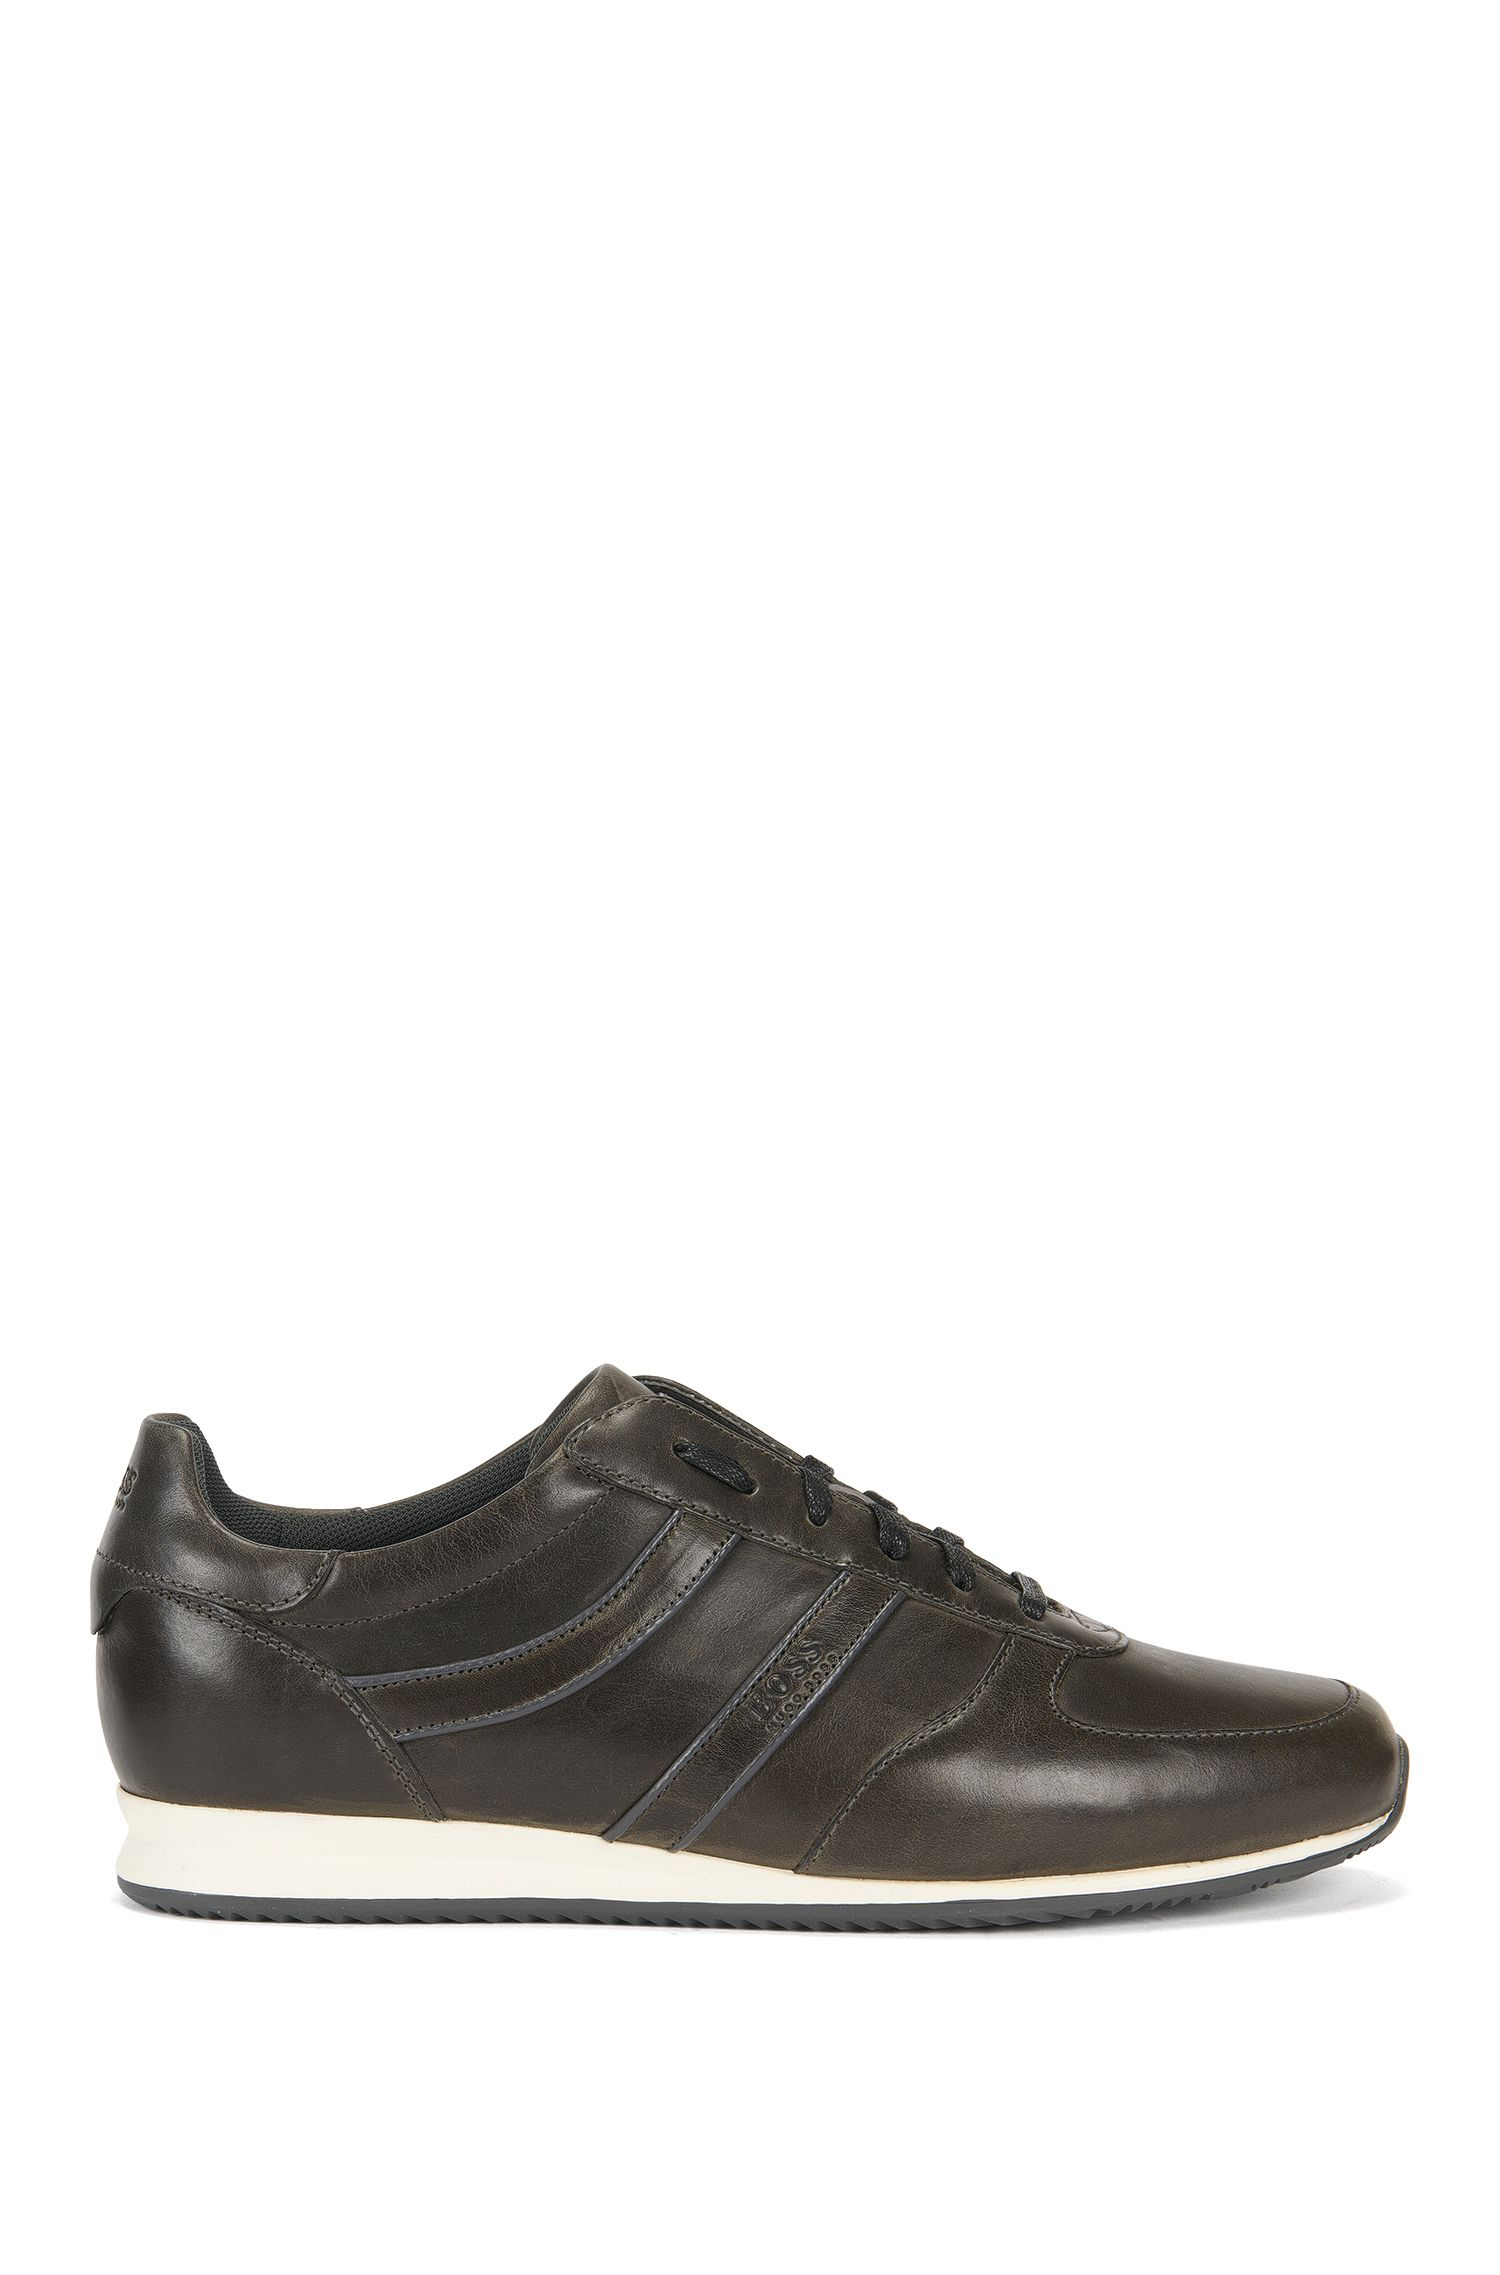 Low-top trainers in pull-up leather